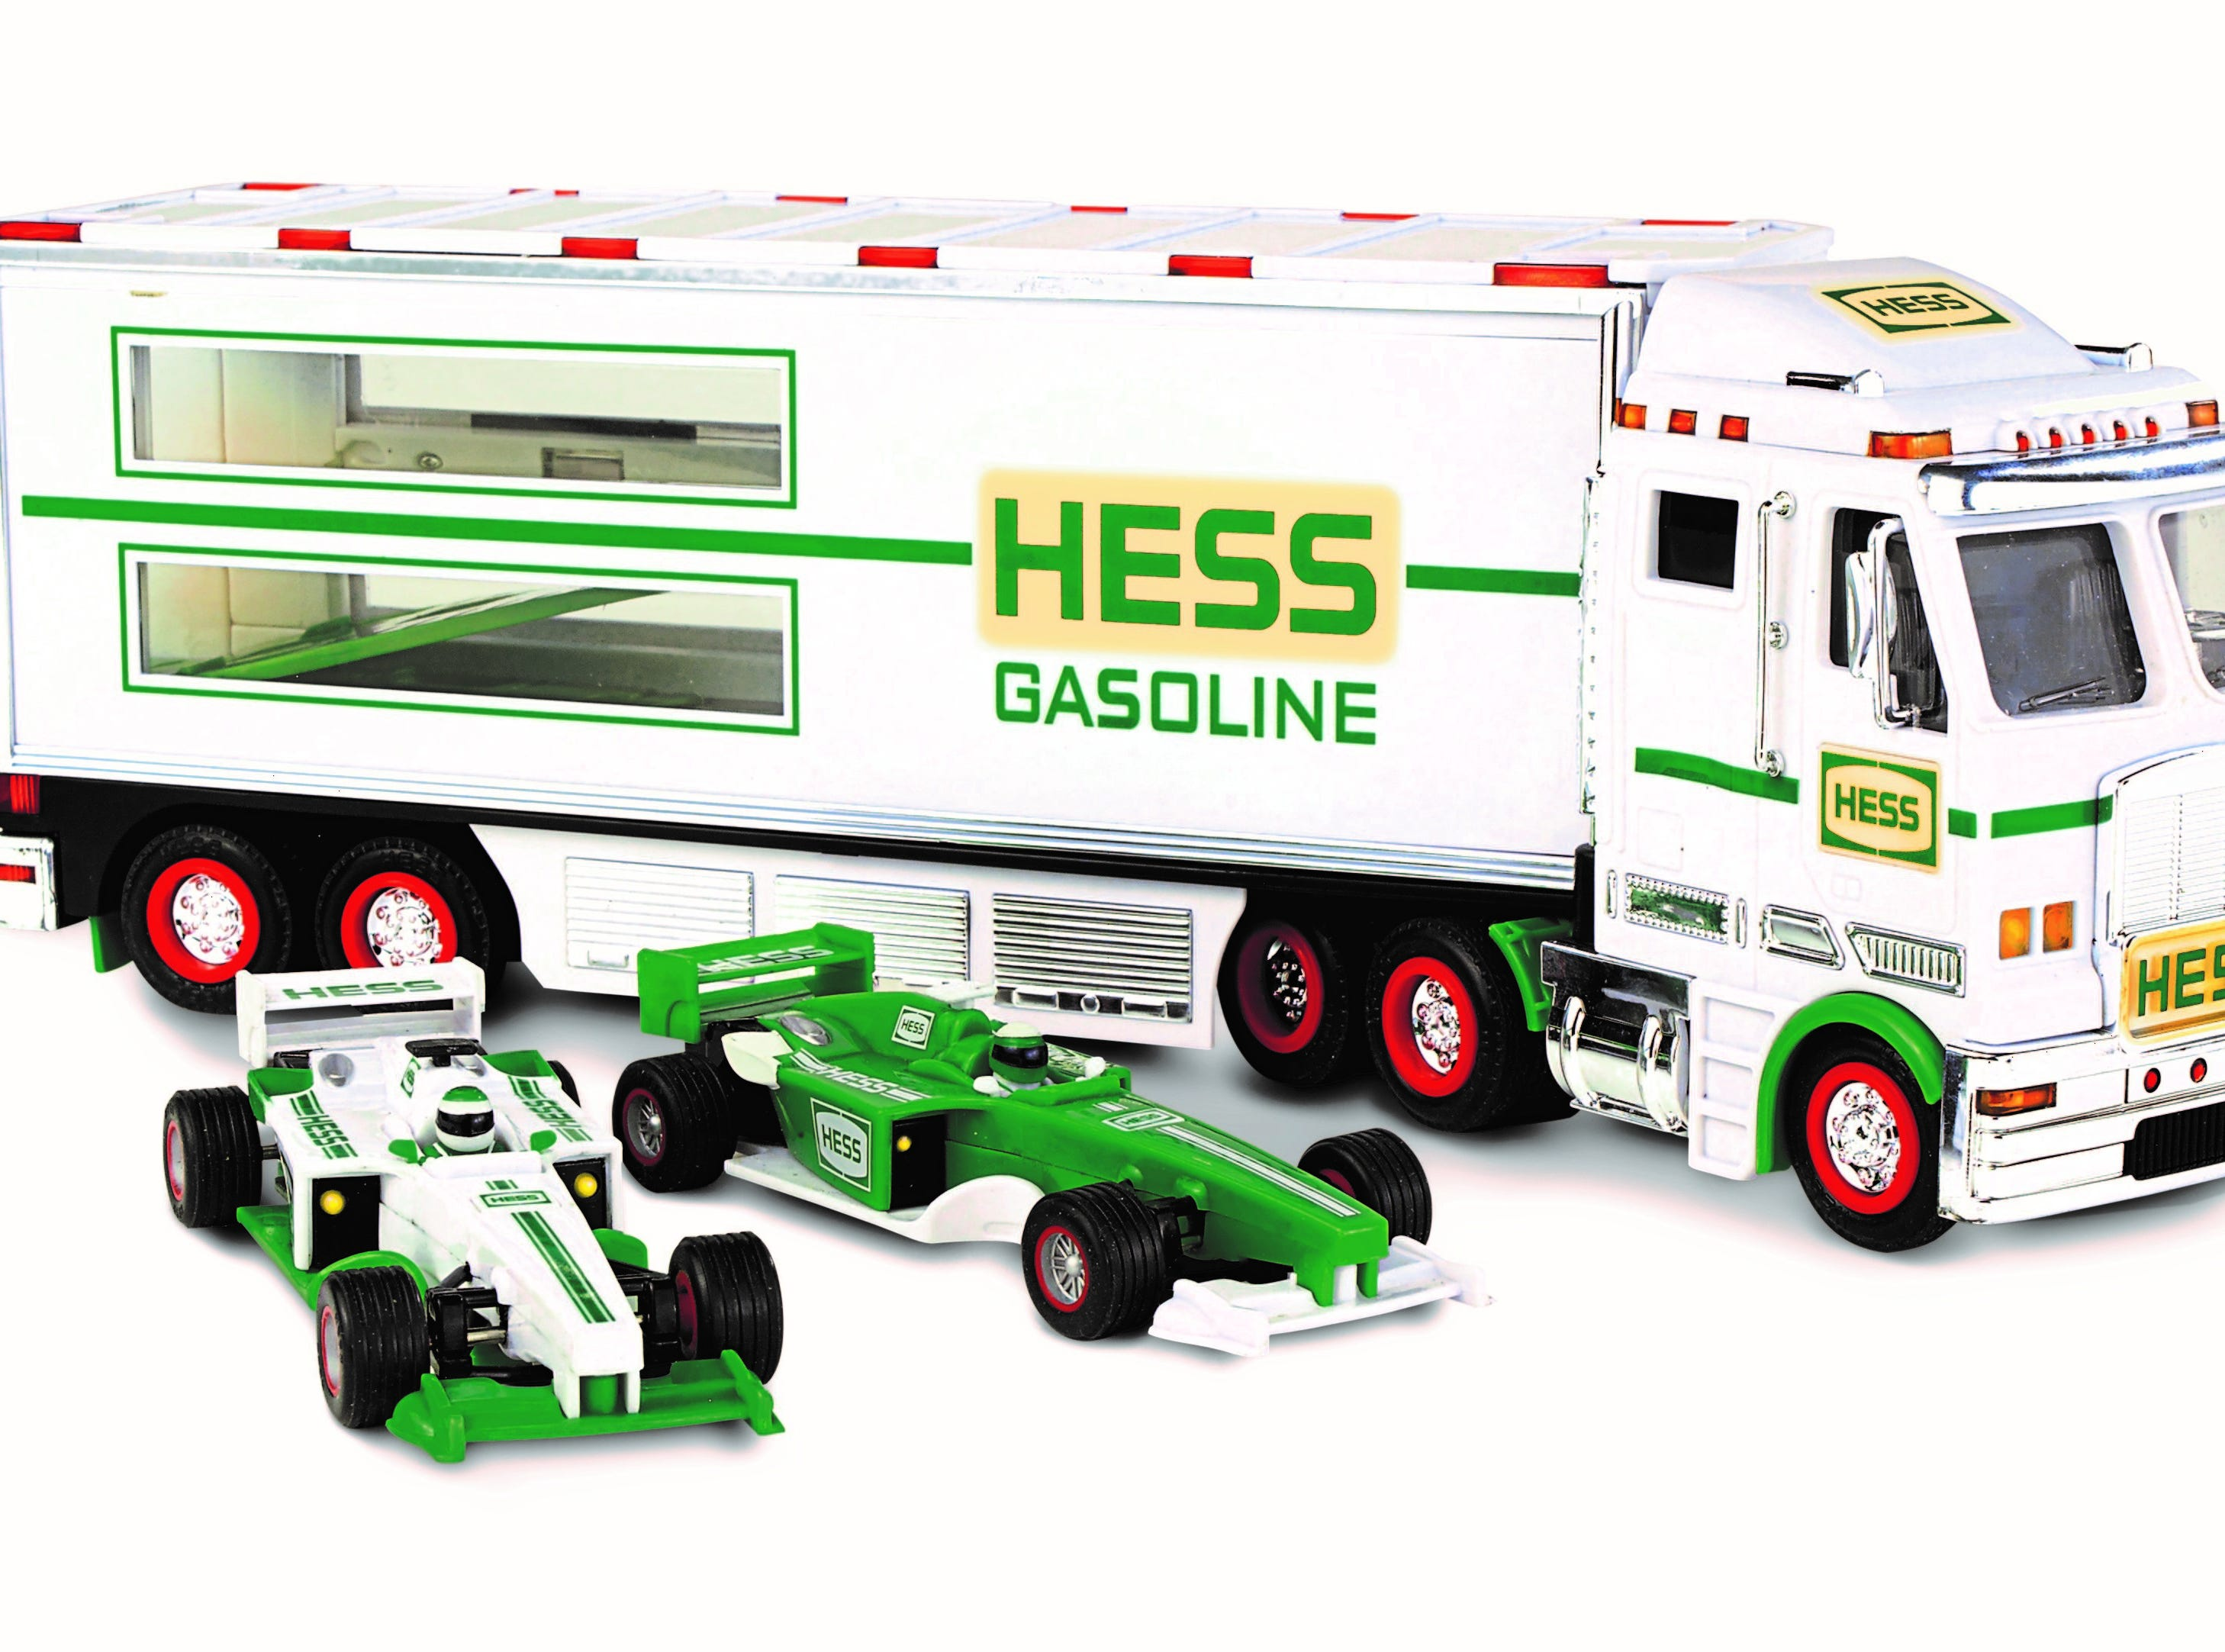 The 2003 Hess toy truck.